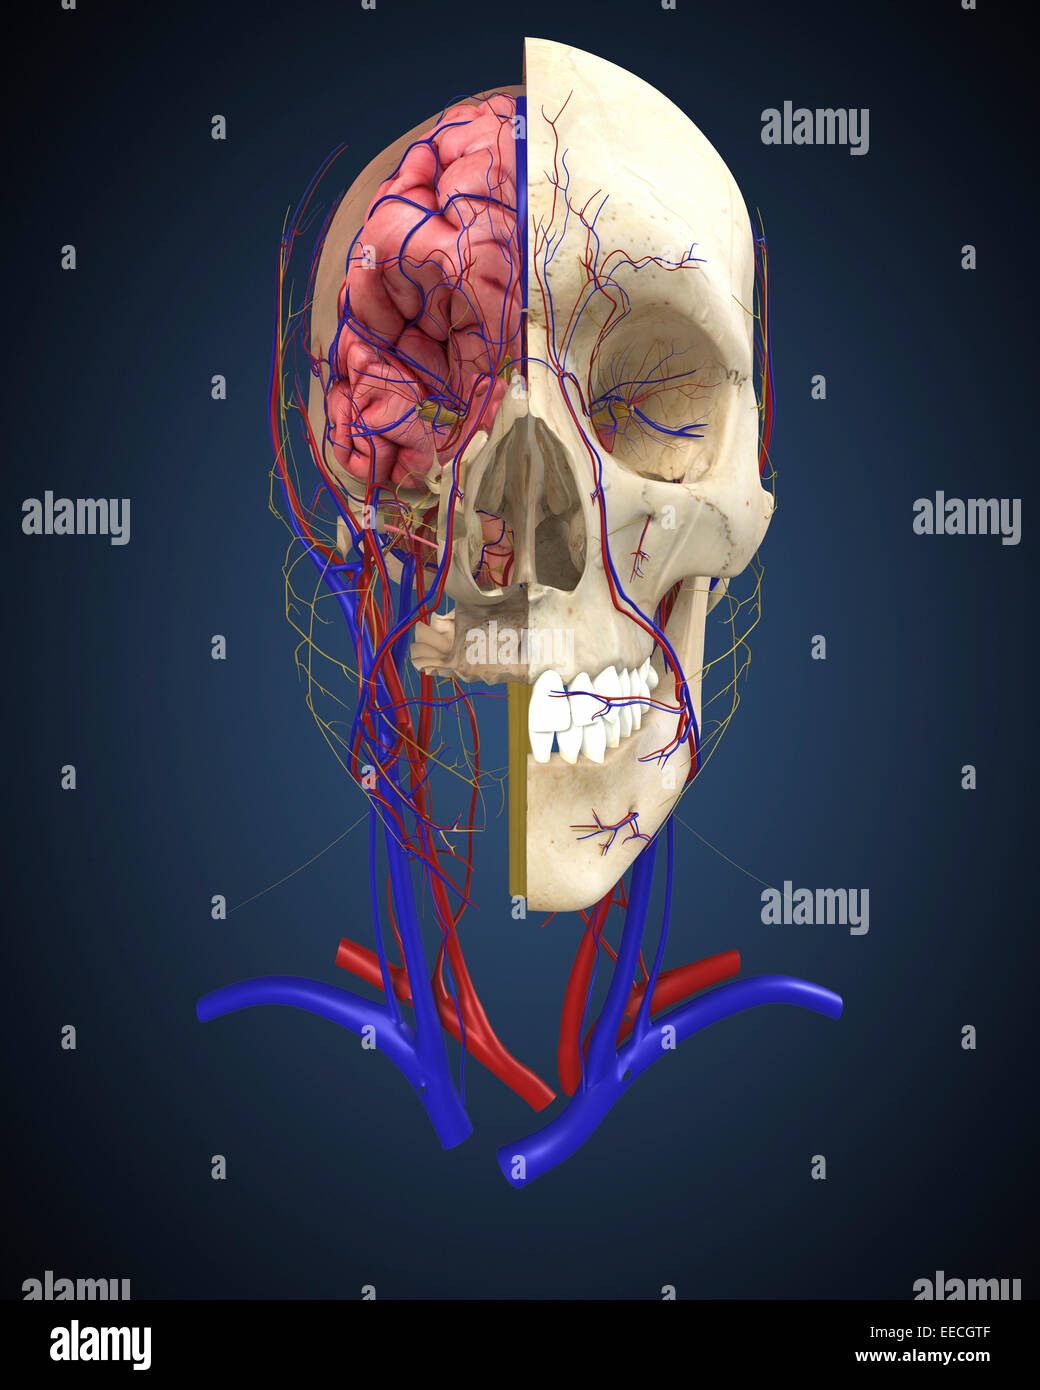 Human skull showing brain and circulatory system. - Stock Image